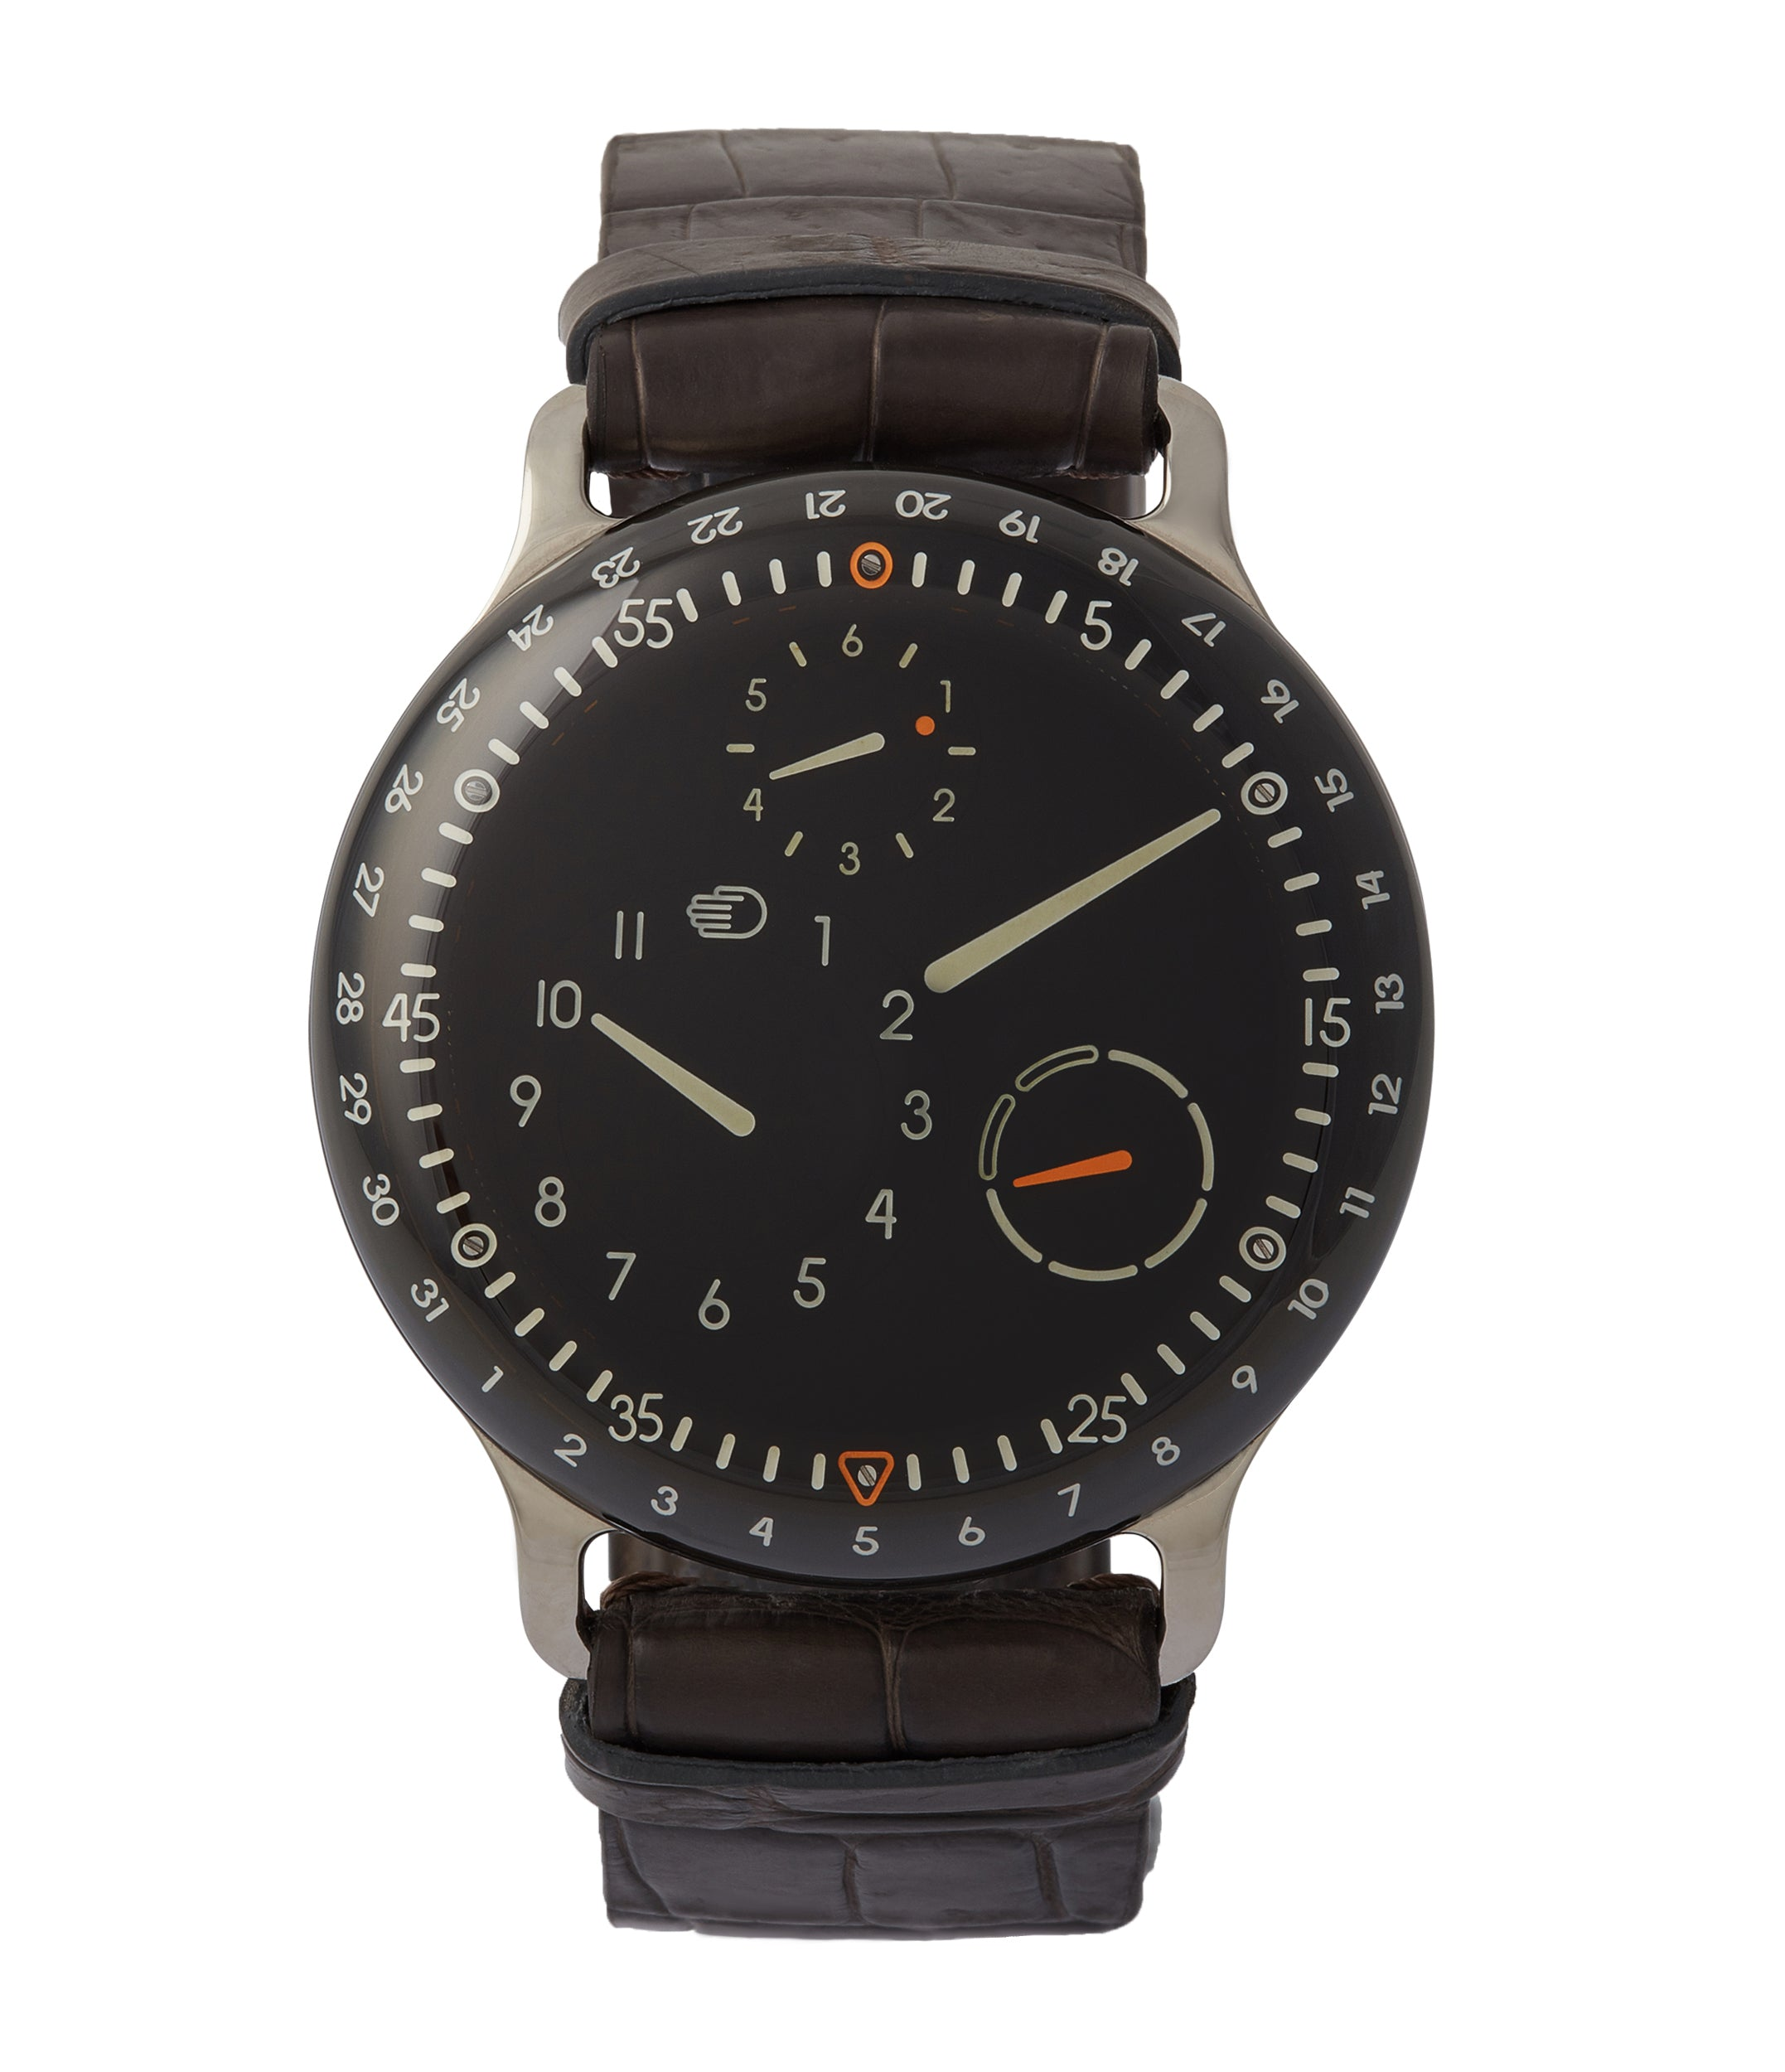 buy Ressence Type 3B oil-filled dial rare sports watch for sale online at A Collected Man London UK specialist of independent watchmakers